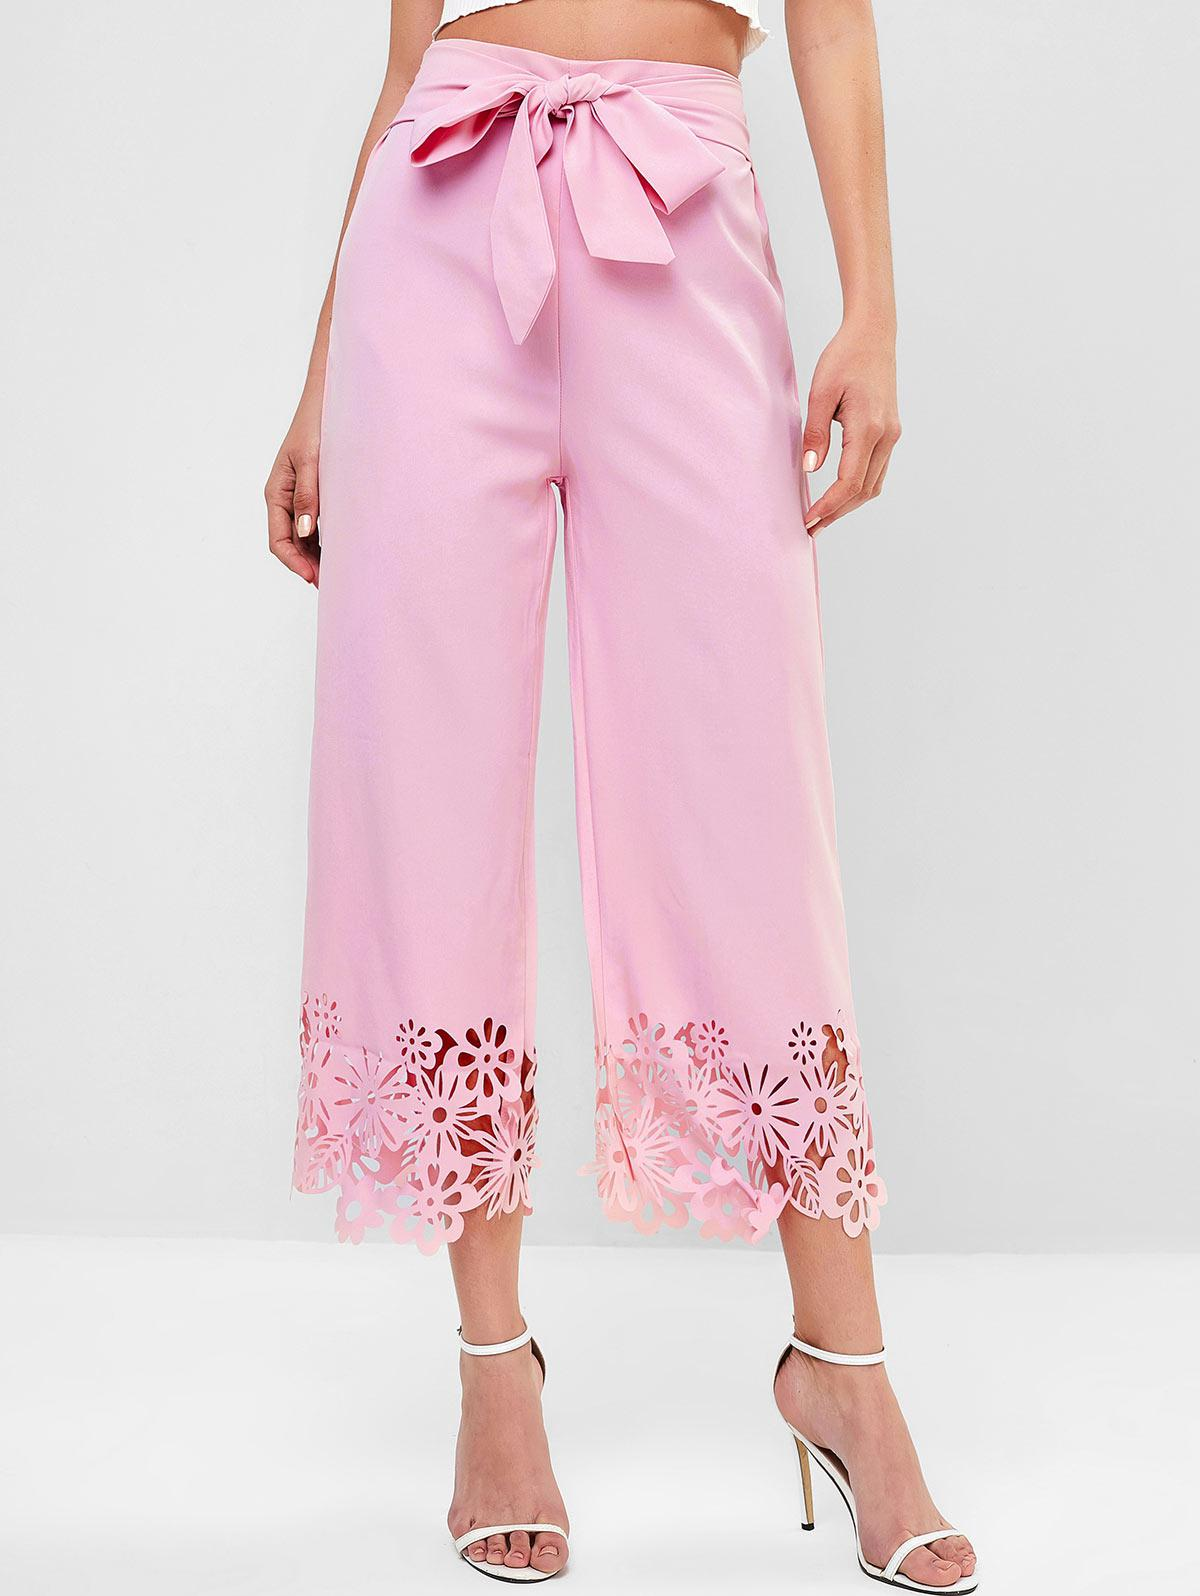 High Waisted Knotted Laser Cut Wide Leg Pants